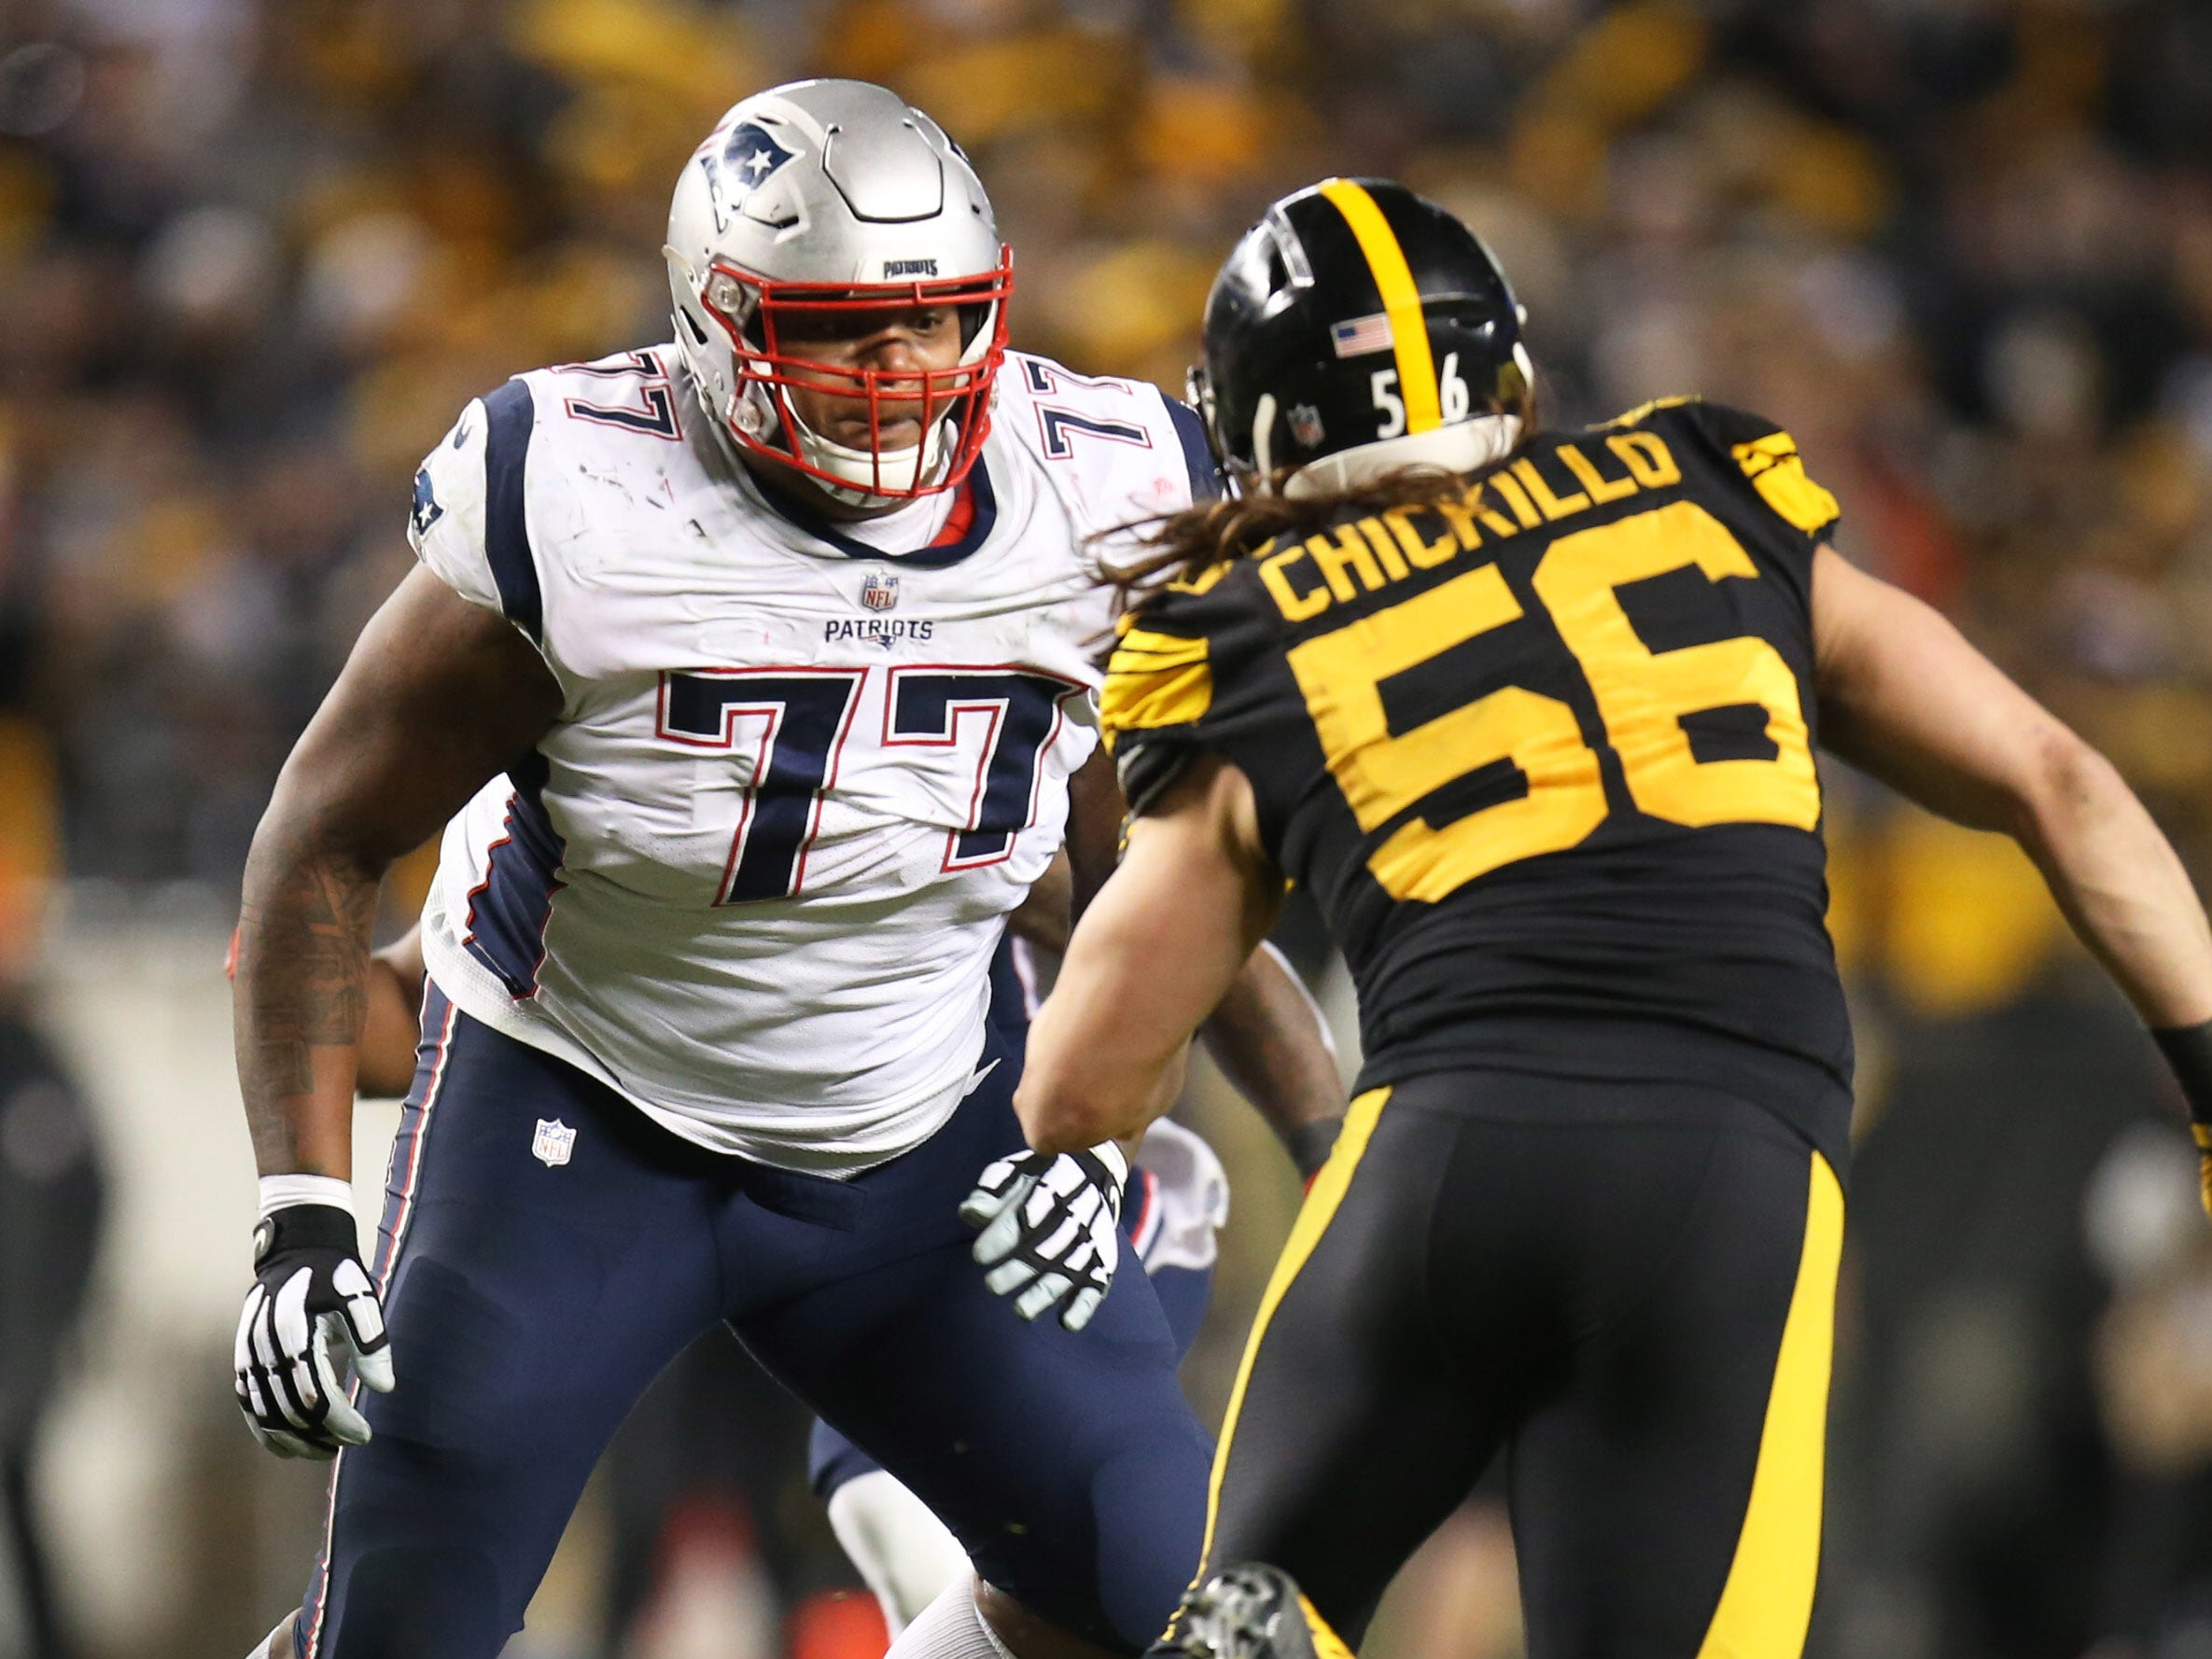 14. Trent Brown, OT, Patriots: Agreed to deal with Raiders